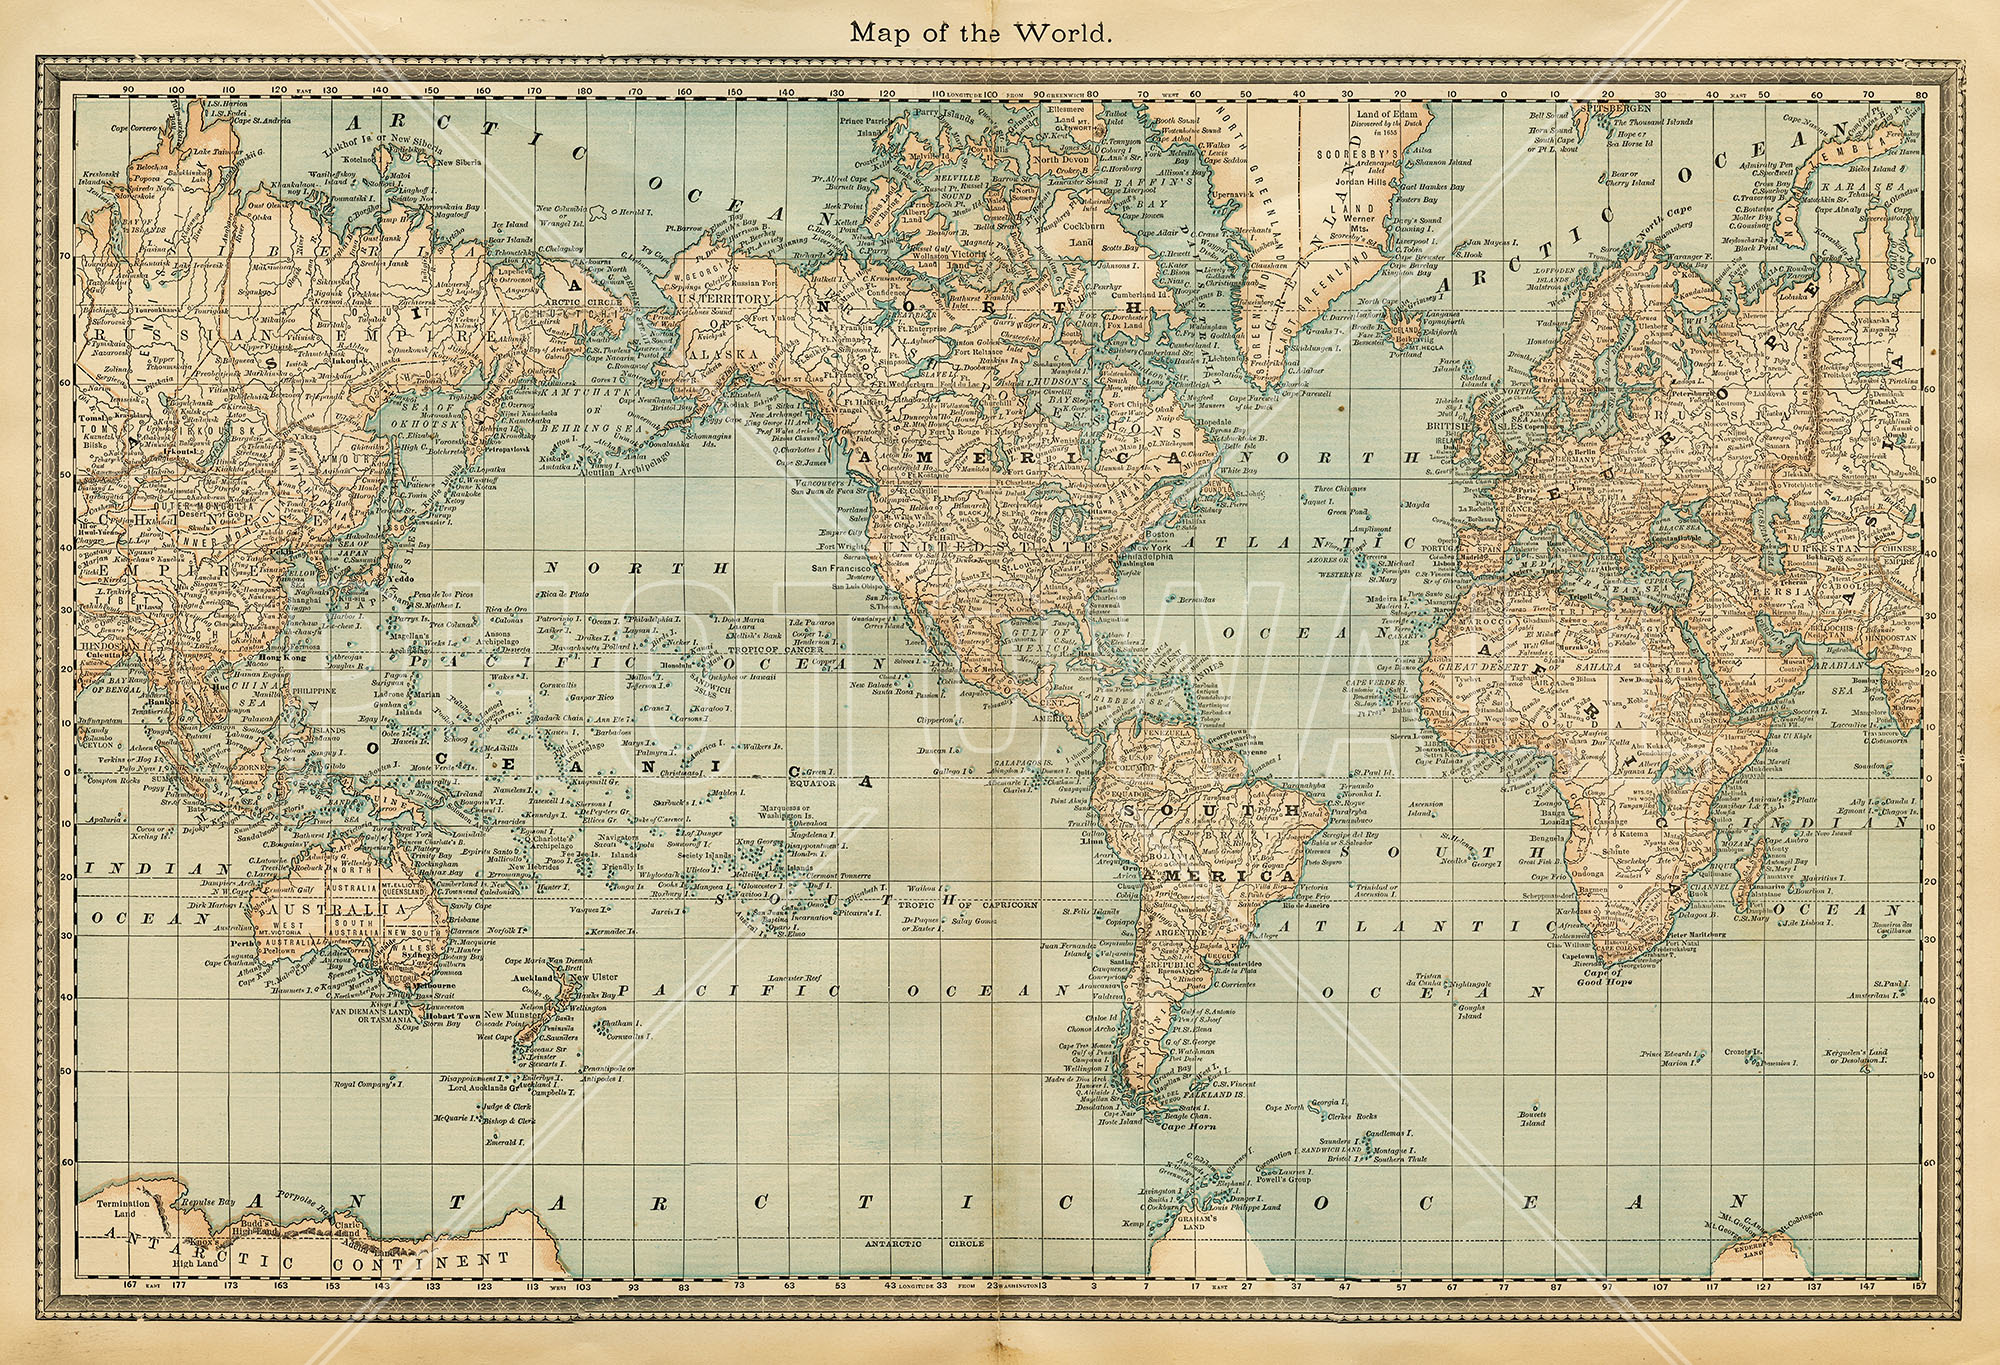 Pale Vintage World Map - World Map Muted Colours , HD Wallpaper & Backgrounds